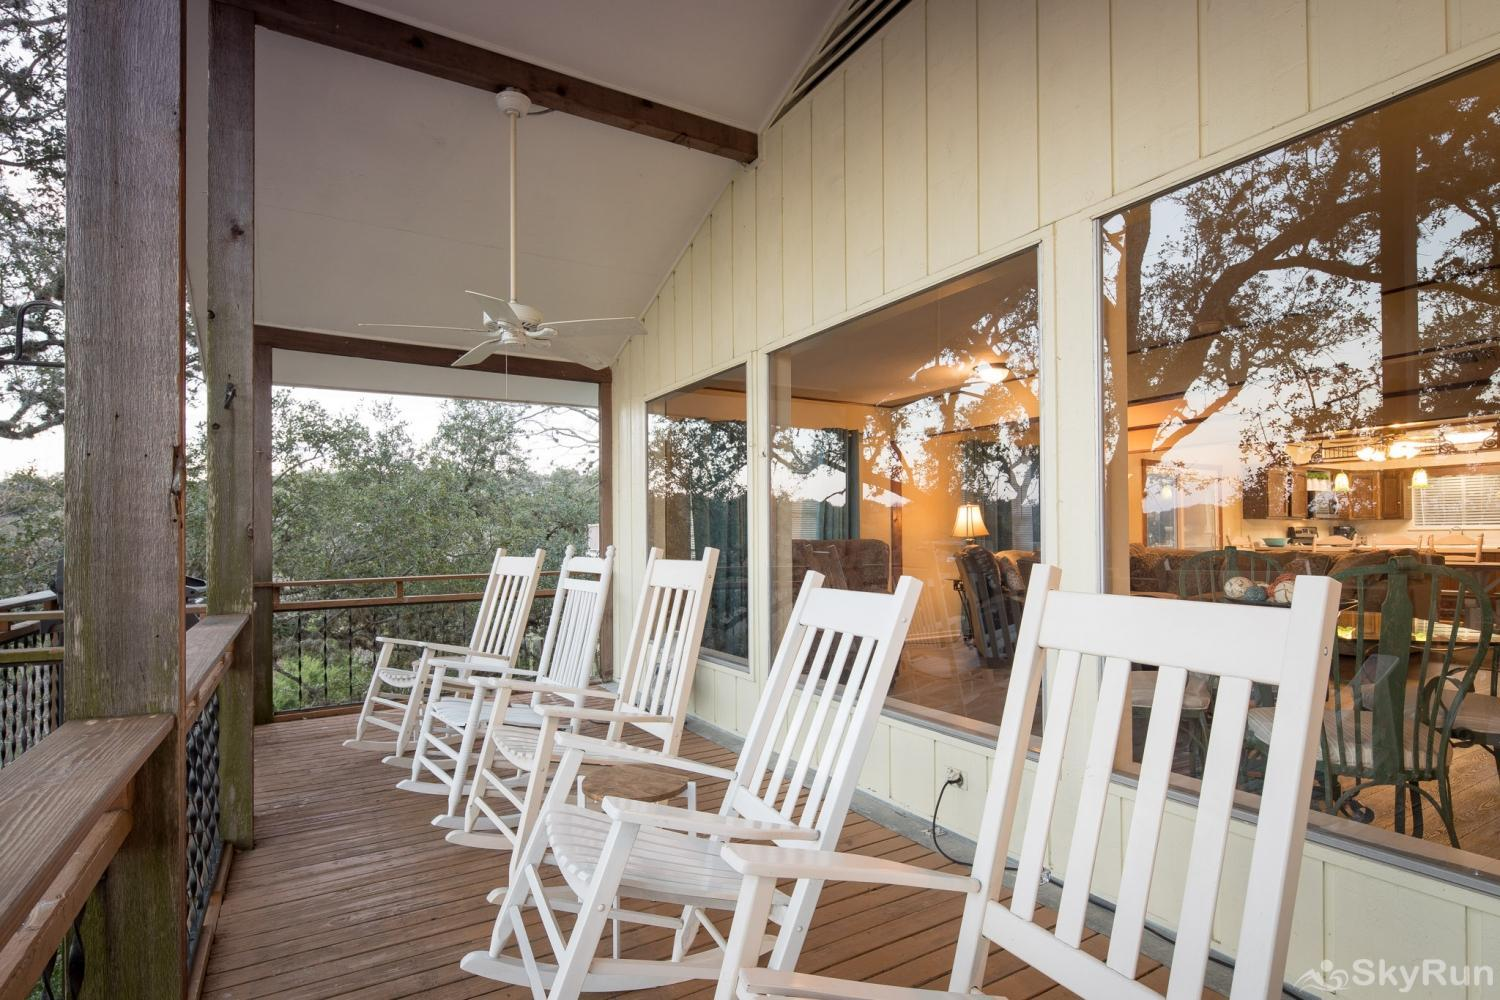 TEXAS ROSE LODGE Rocking chairs are ready for you and your beverage of choice